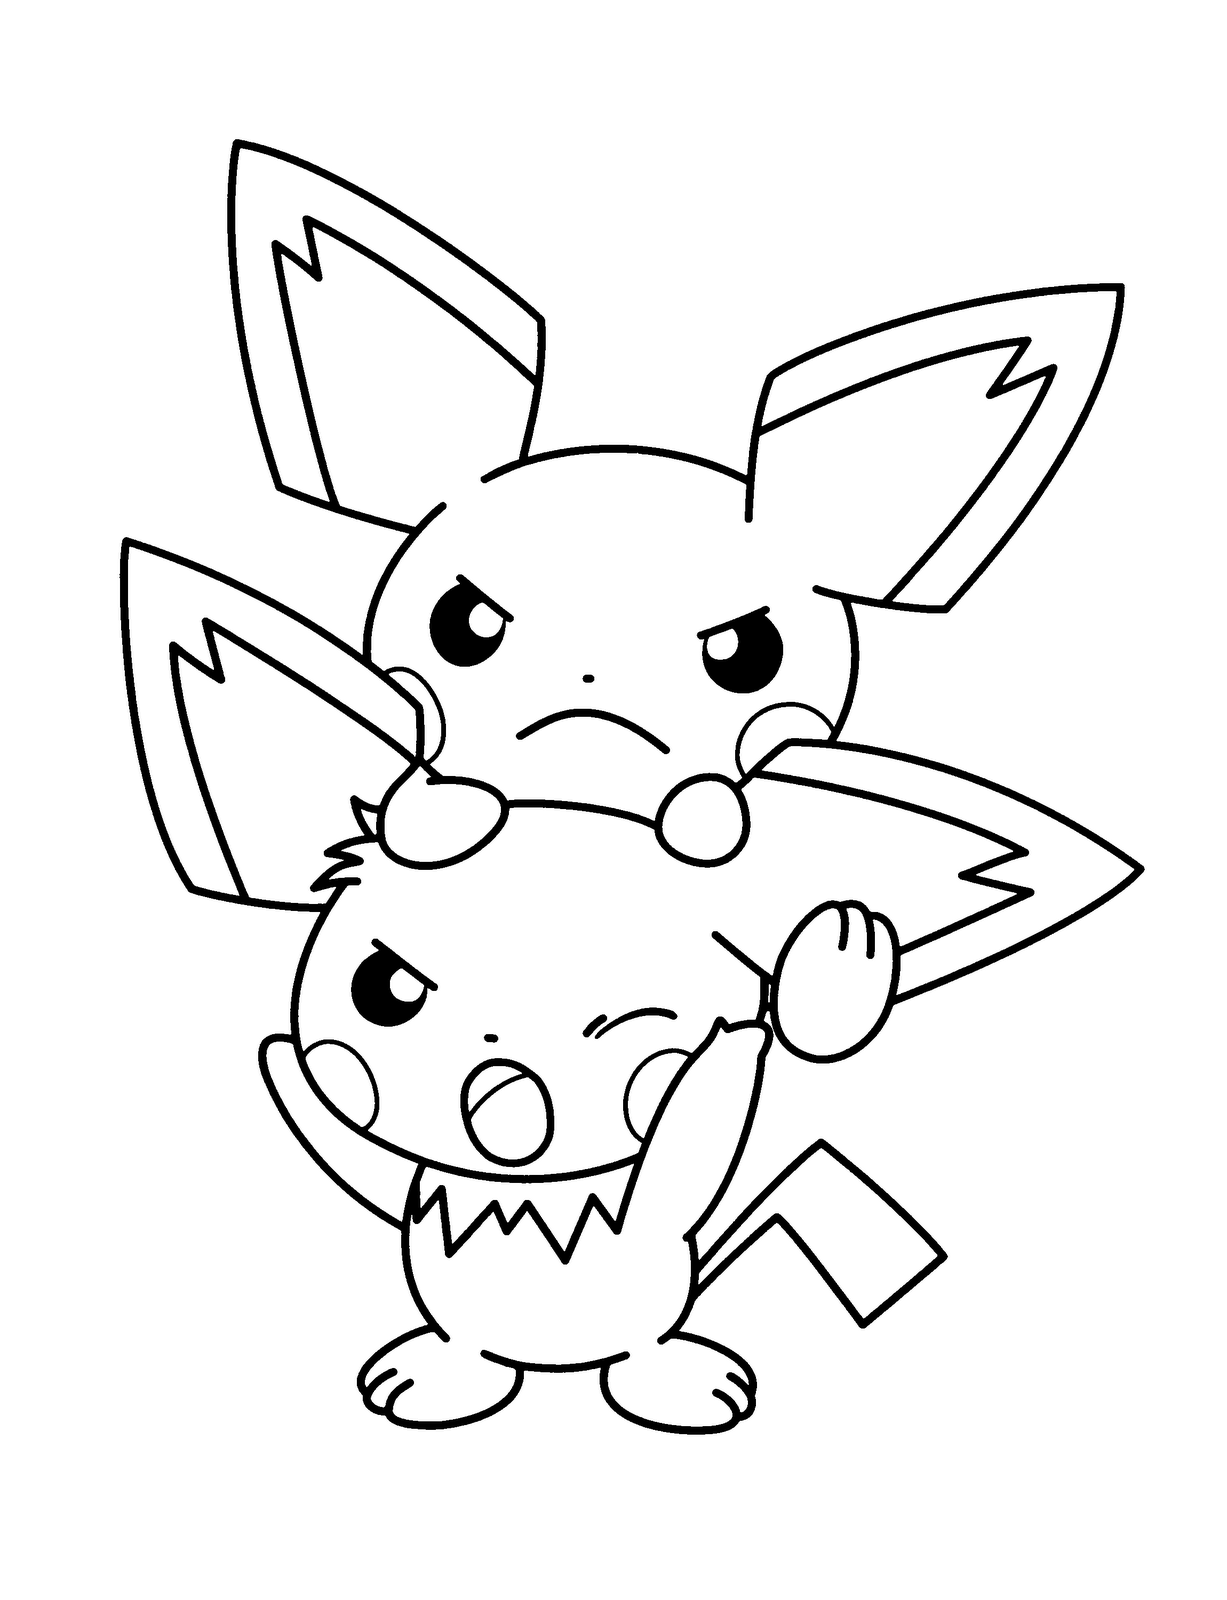 1227x1600 Pikachu Pokemon Pokemon Coloring Pages Free Printable Kids Art